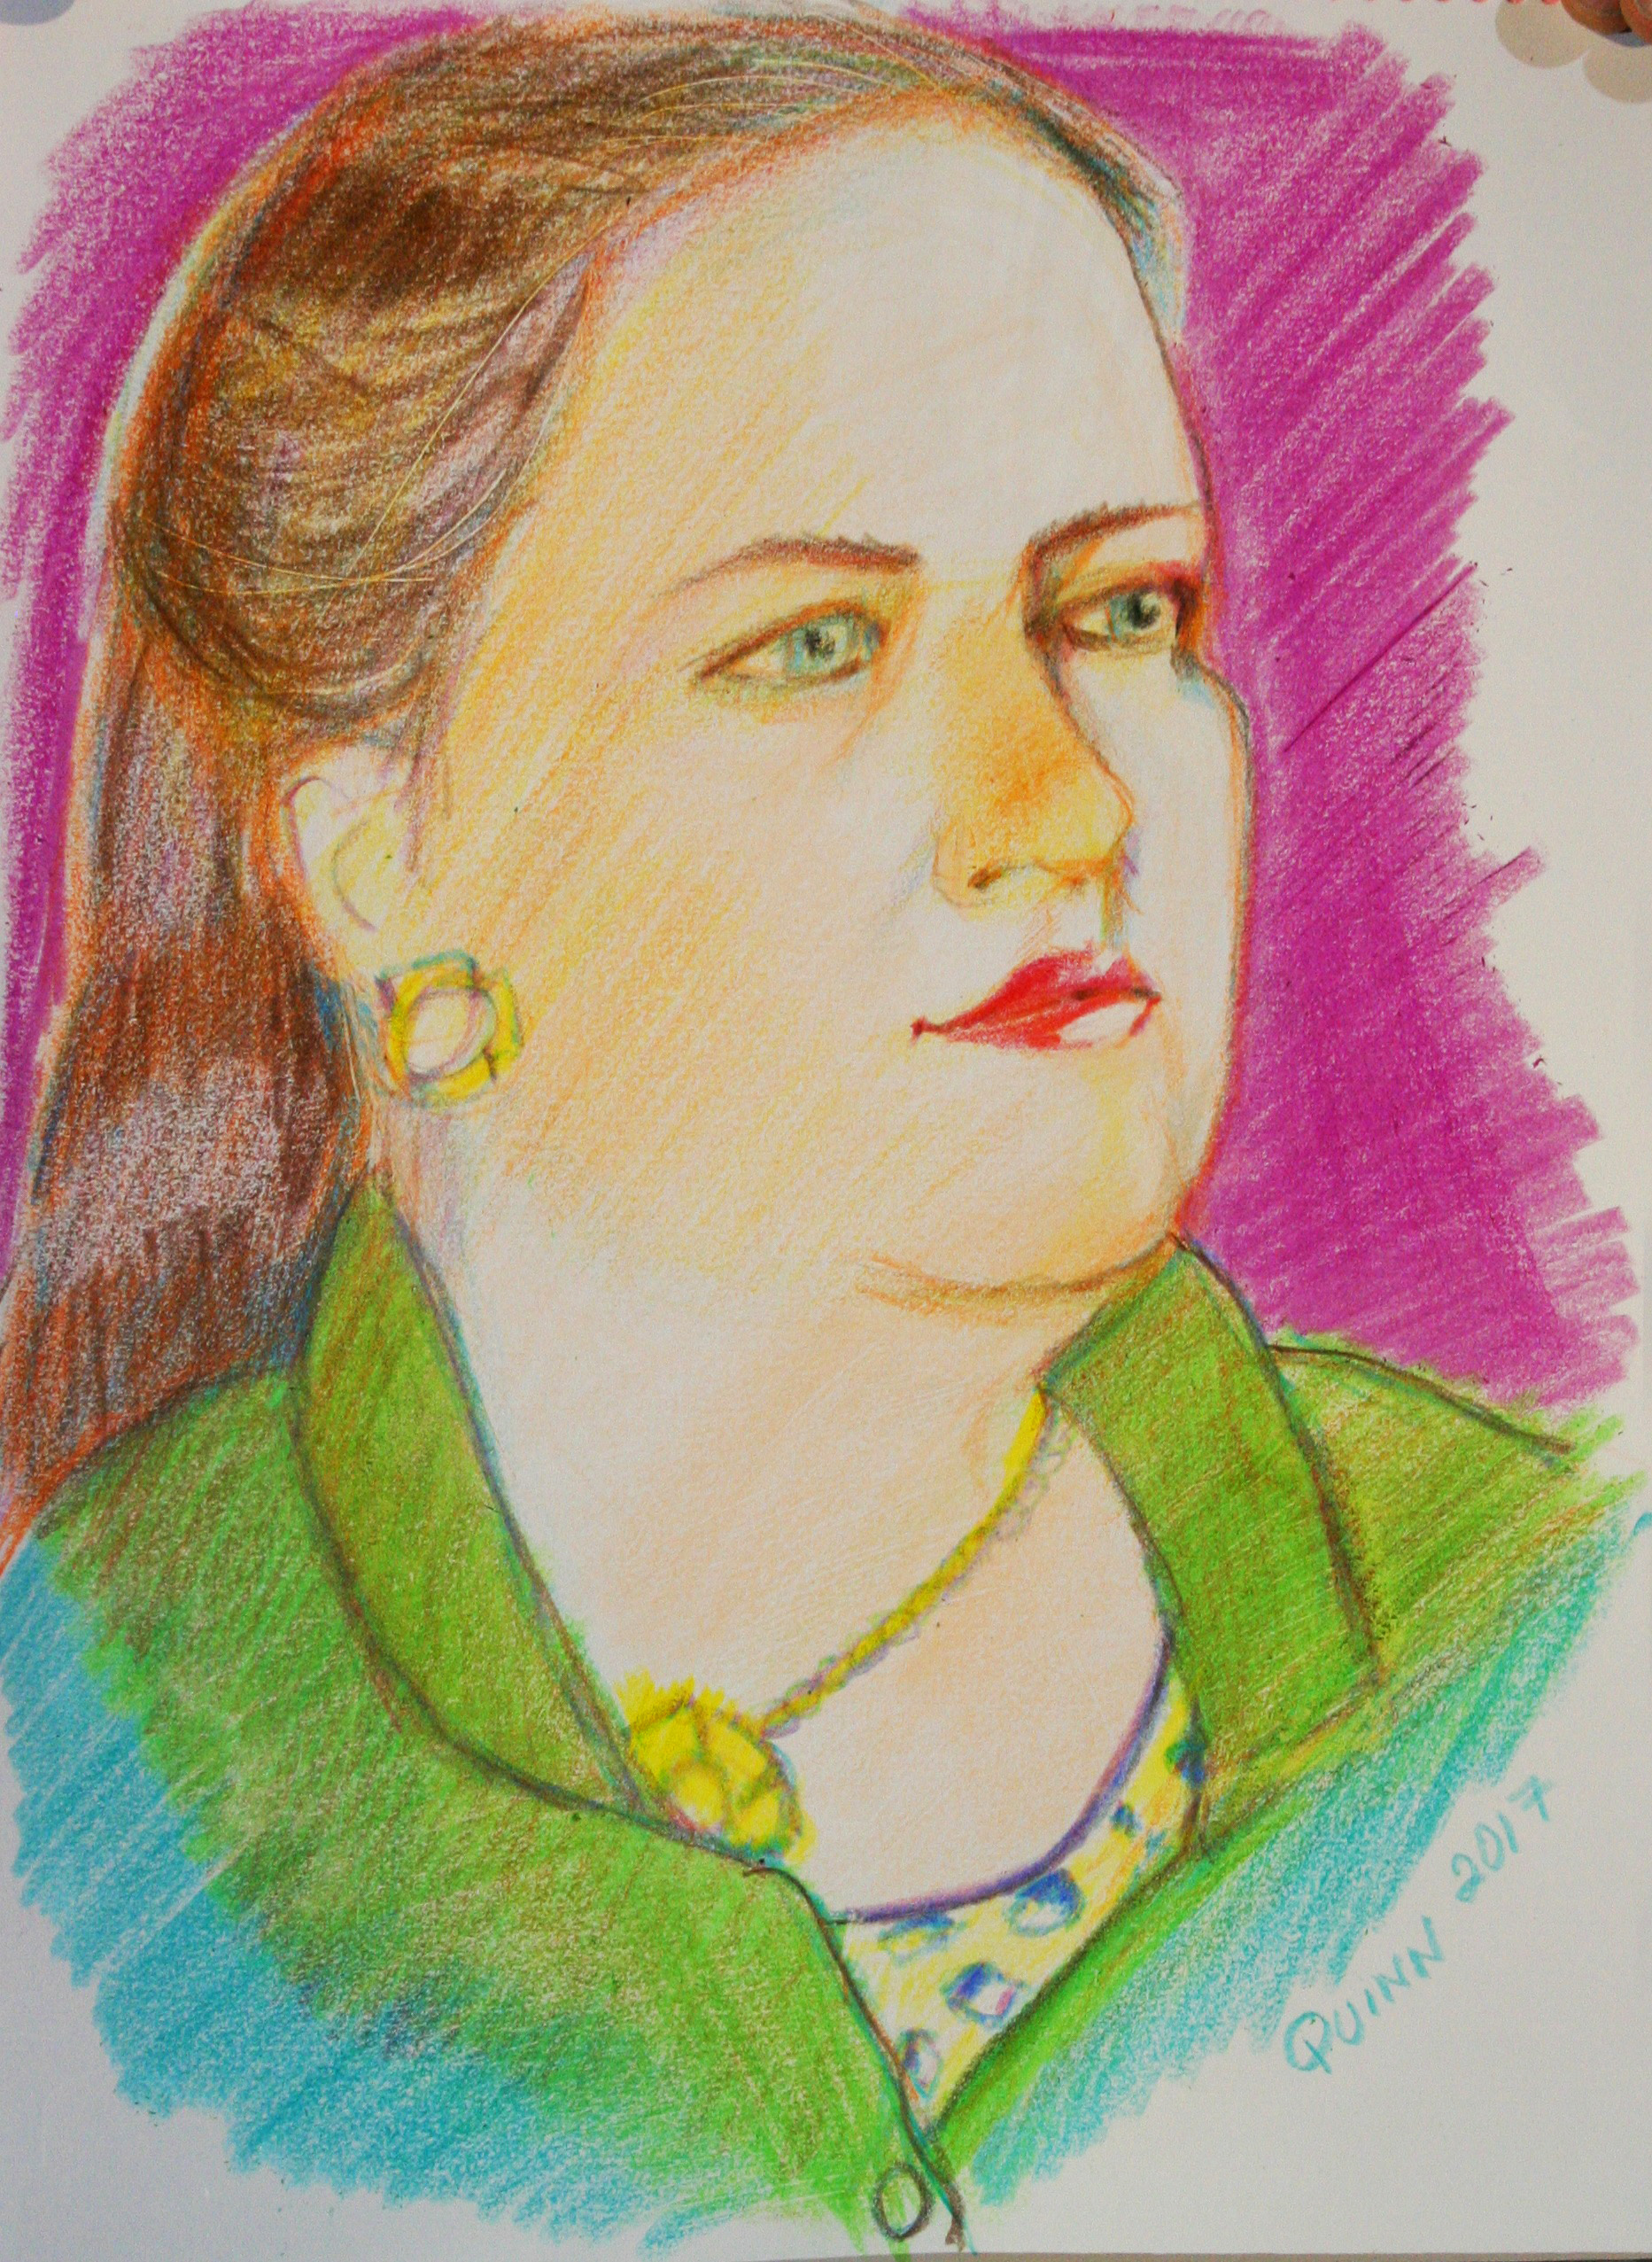 Phyllis Peterson Levine did this 3-hour crayon drawing.